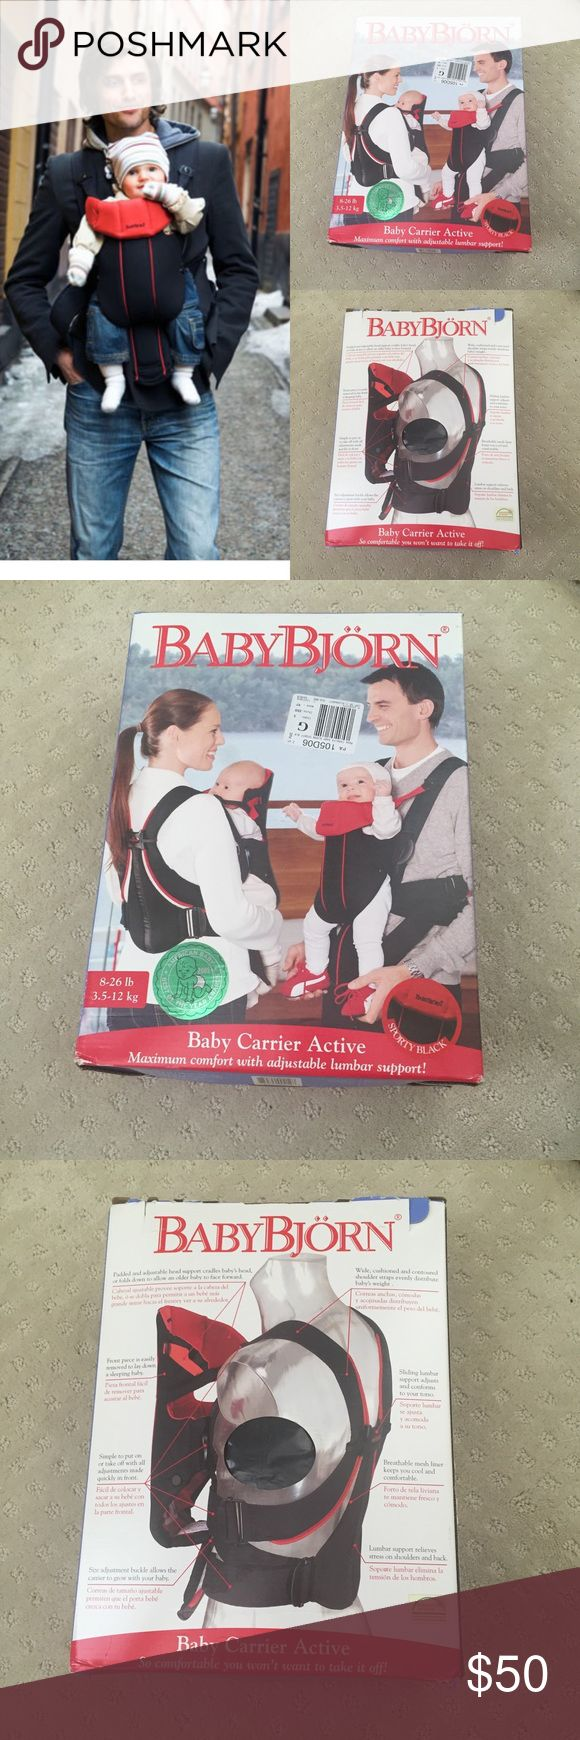 Baby Bjorn active baby carrier new in box New in box. Holds baby 8-26lbs. Is a 360 baby carrier you can chose to carry the baby forward or backward Baby Bjorn Accessories